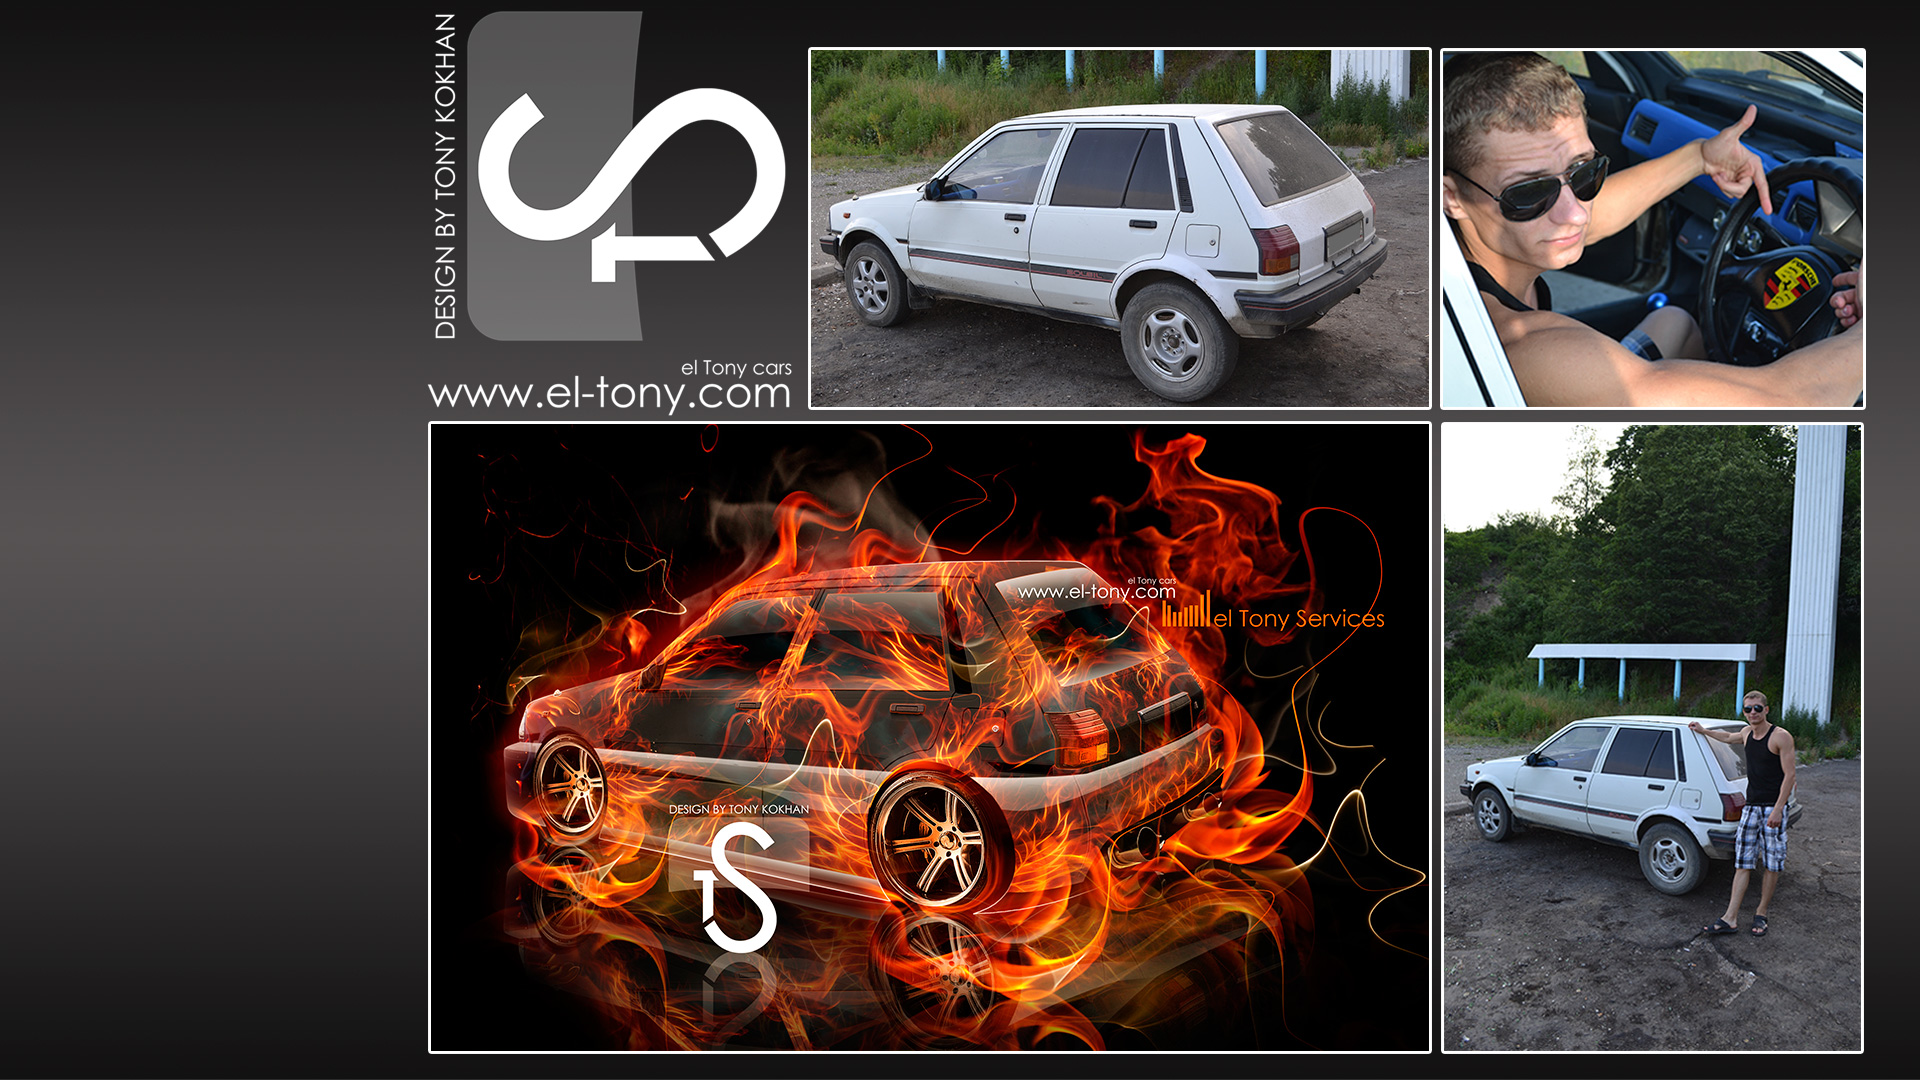 Beau Toyota Starlet JDM Fire Car Russian El Tony Services